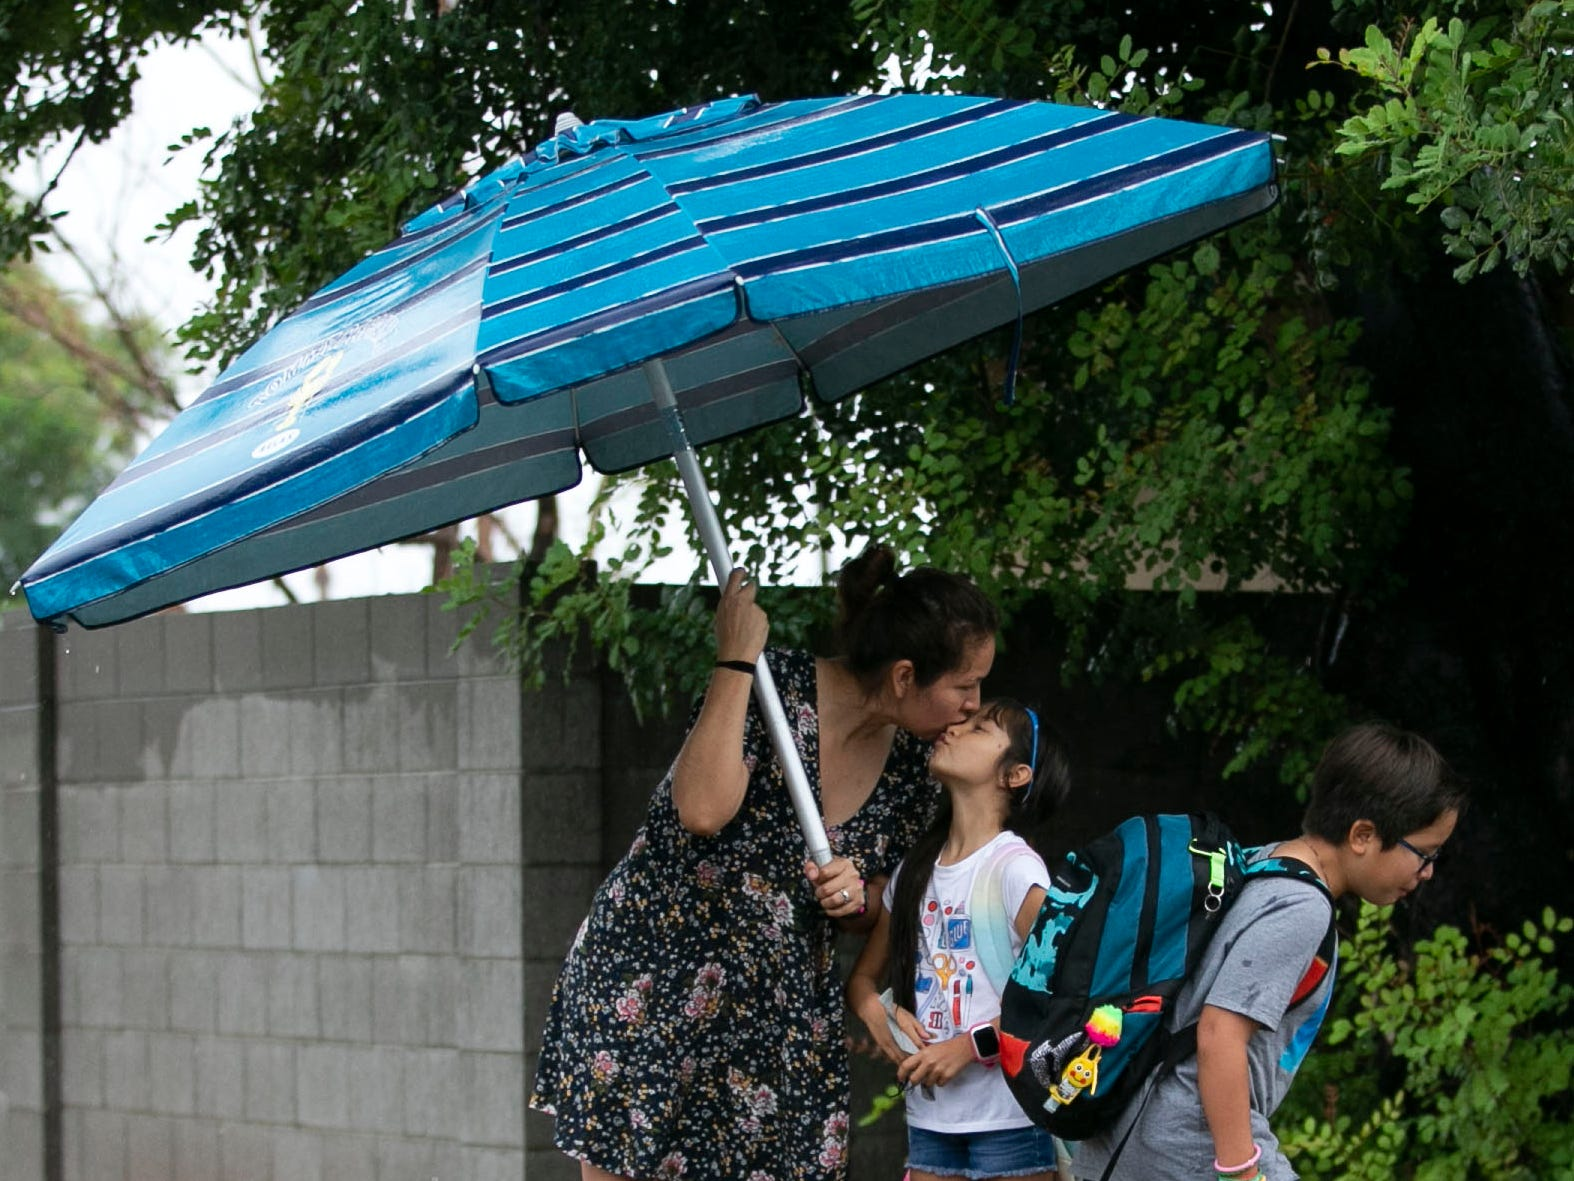 Under a pool umbrella Lucy Gomez kisses her daughter Natalia Gomez, 7, as her brother, Ray Gomez, 9, walks to the to the school bus in Phoenix on Oct. 2, 2018. The remnants of Hurricane Rosa brought rain to the Valley on Tuesday. Lucy said they used the pool umbrella because it was the only umbrella she had.